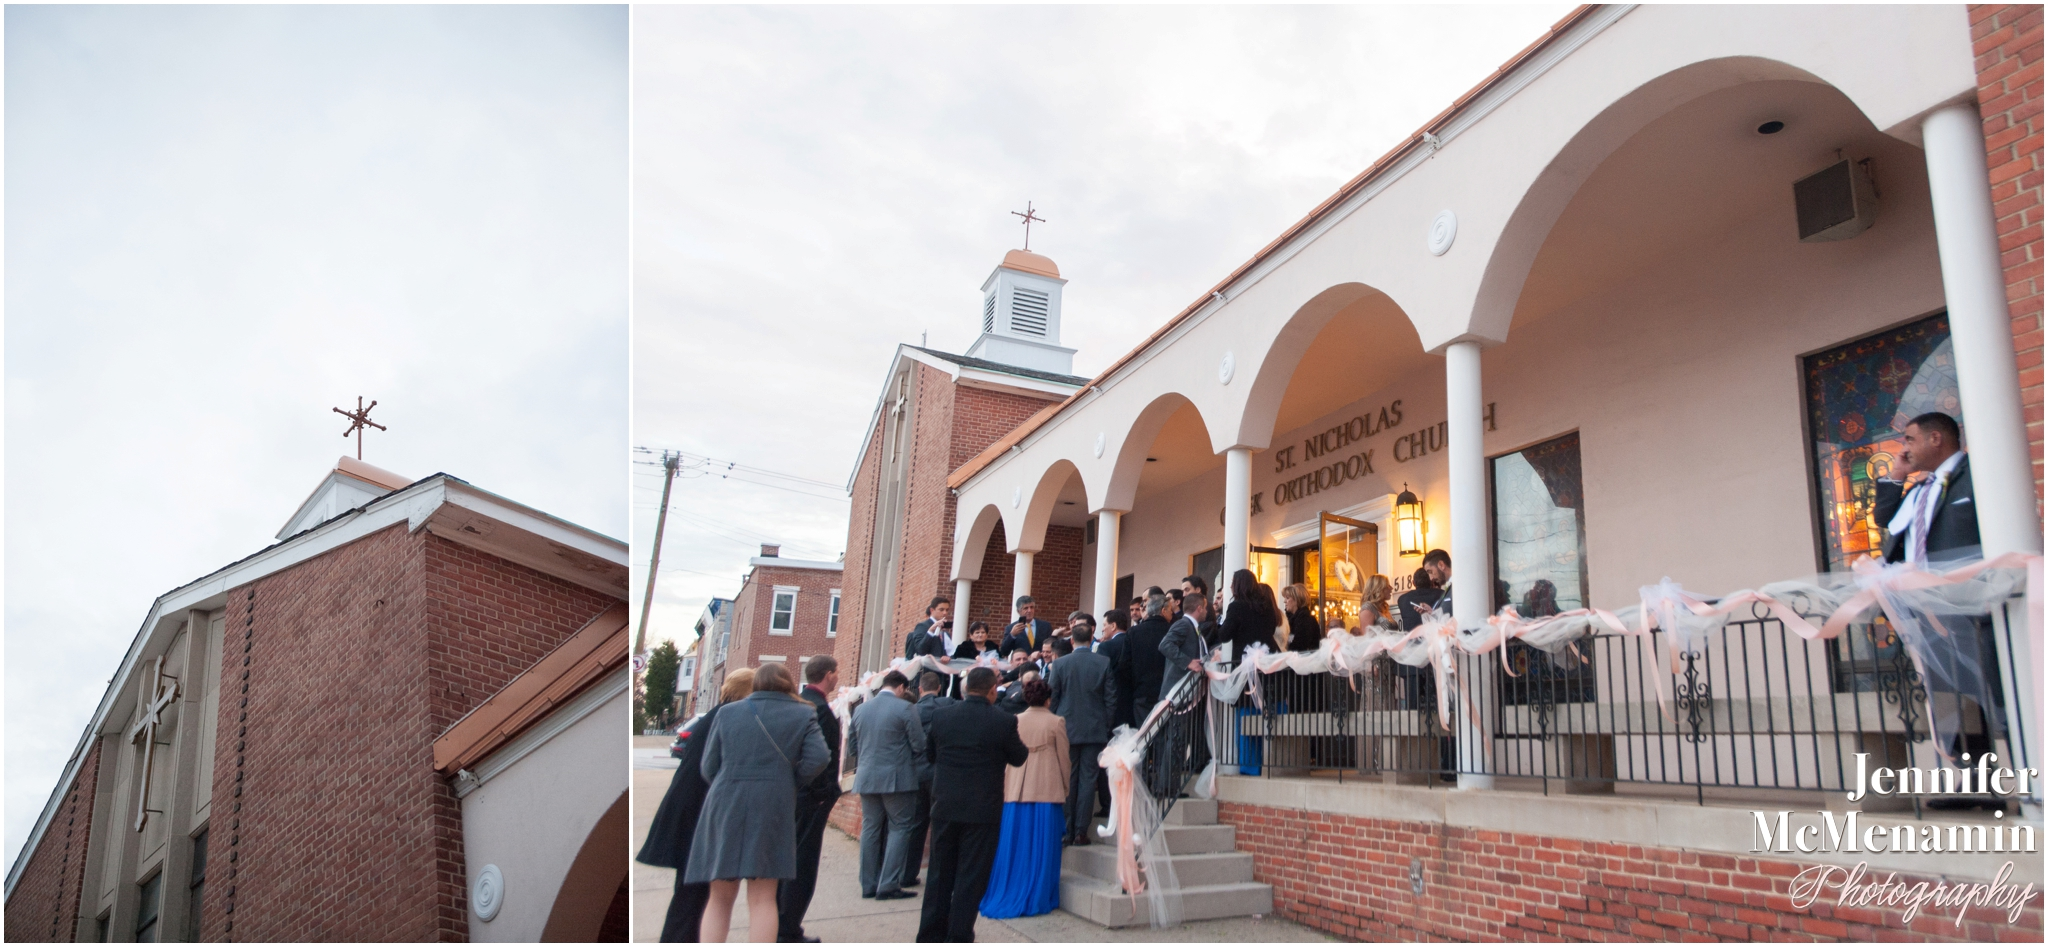 041-RigopoulosHatzinicolas_01672_JenniferMcMenaminPhotography_St-Nicholas-Greek-Orthodox-Church_Martins-West_Baltimore-wedding-photography_Baltimore-wedding-photographer